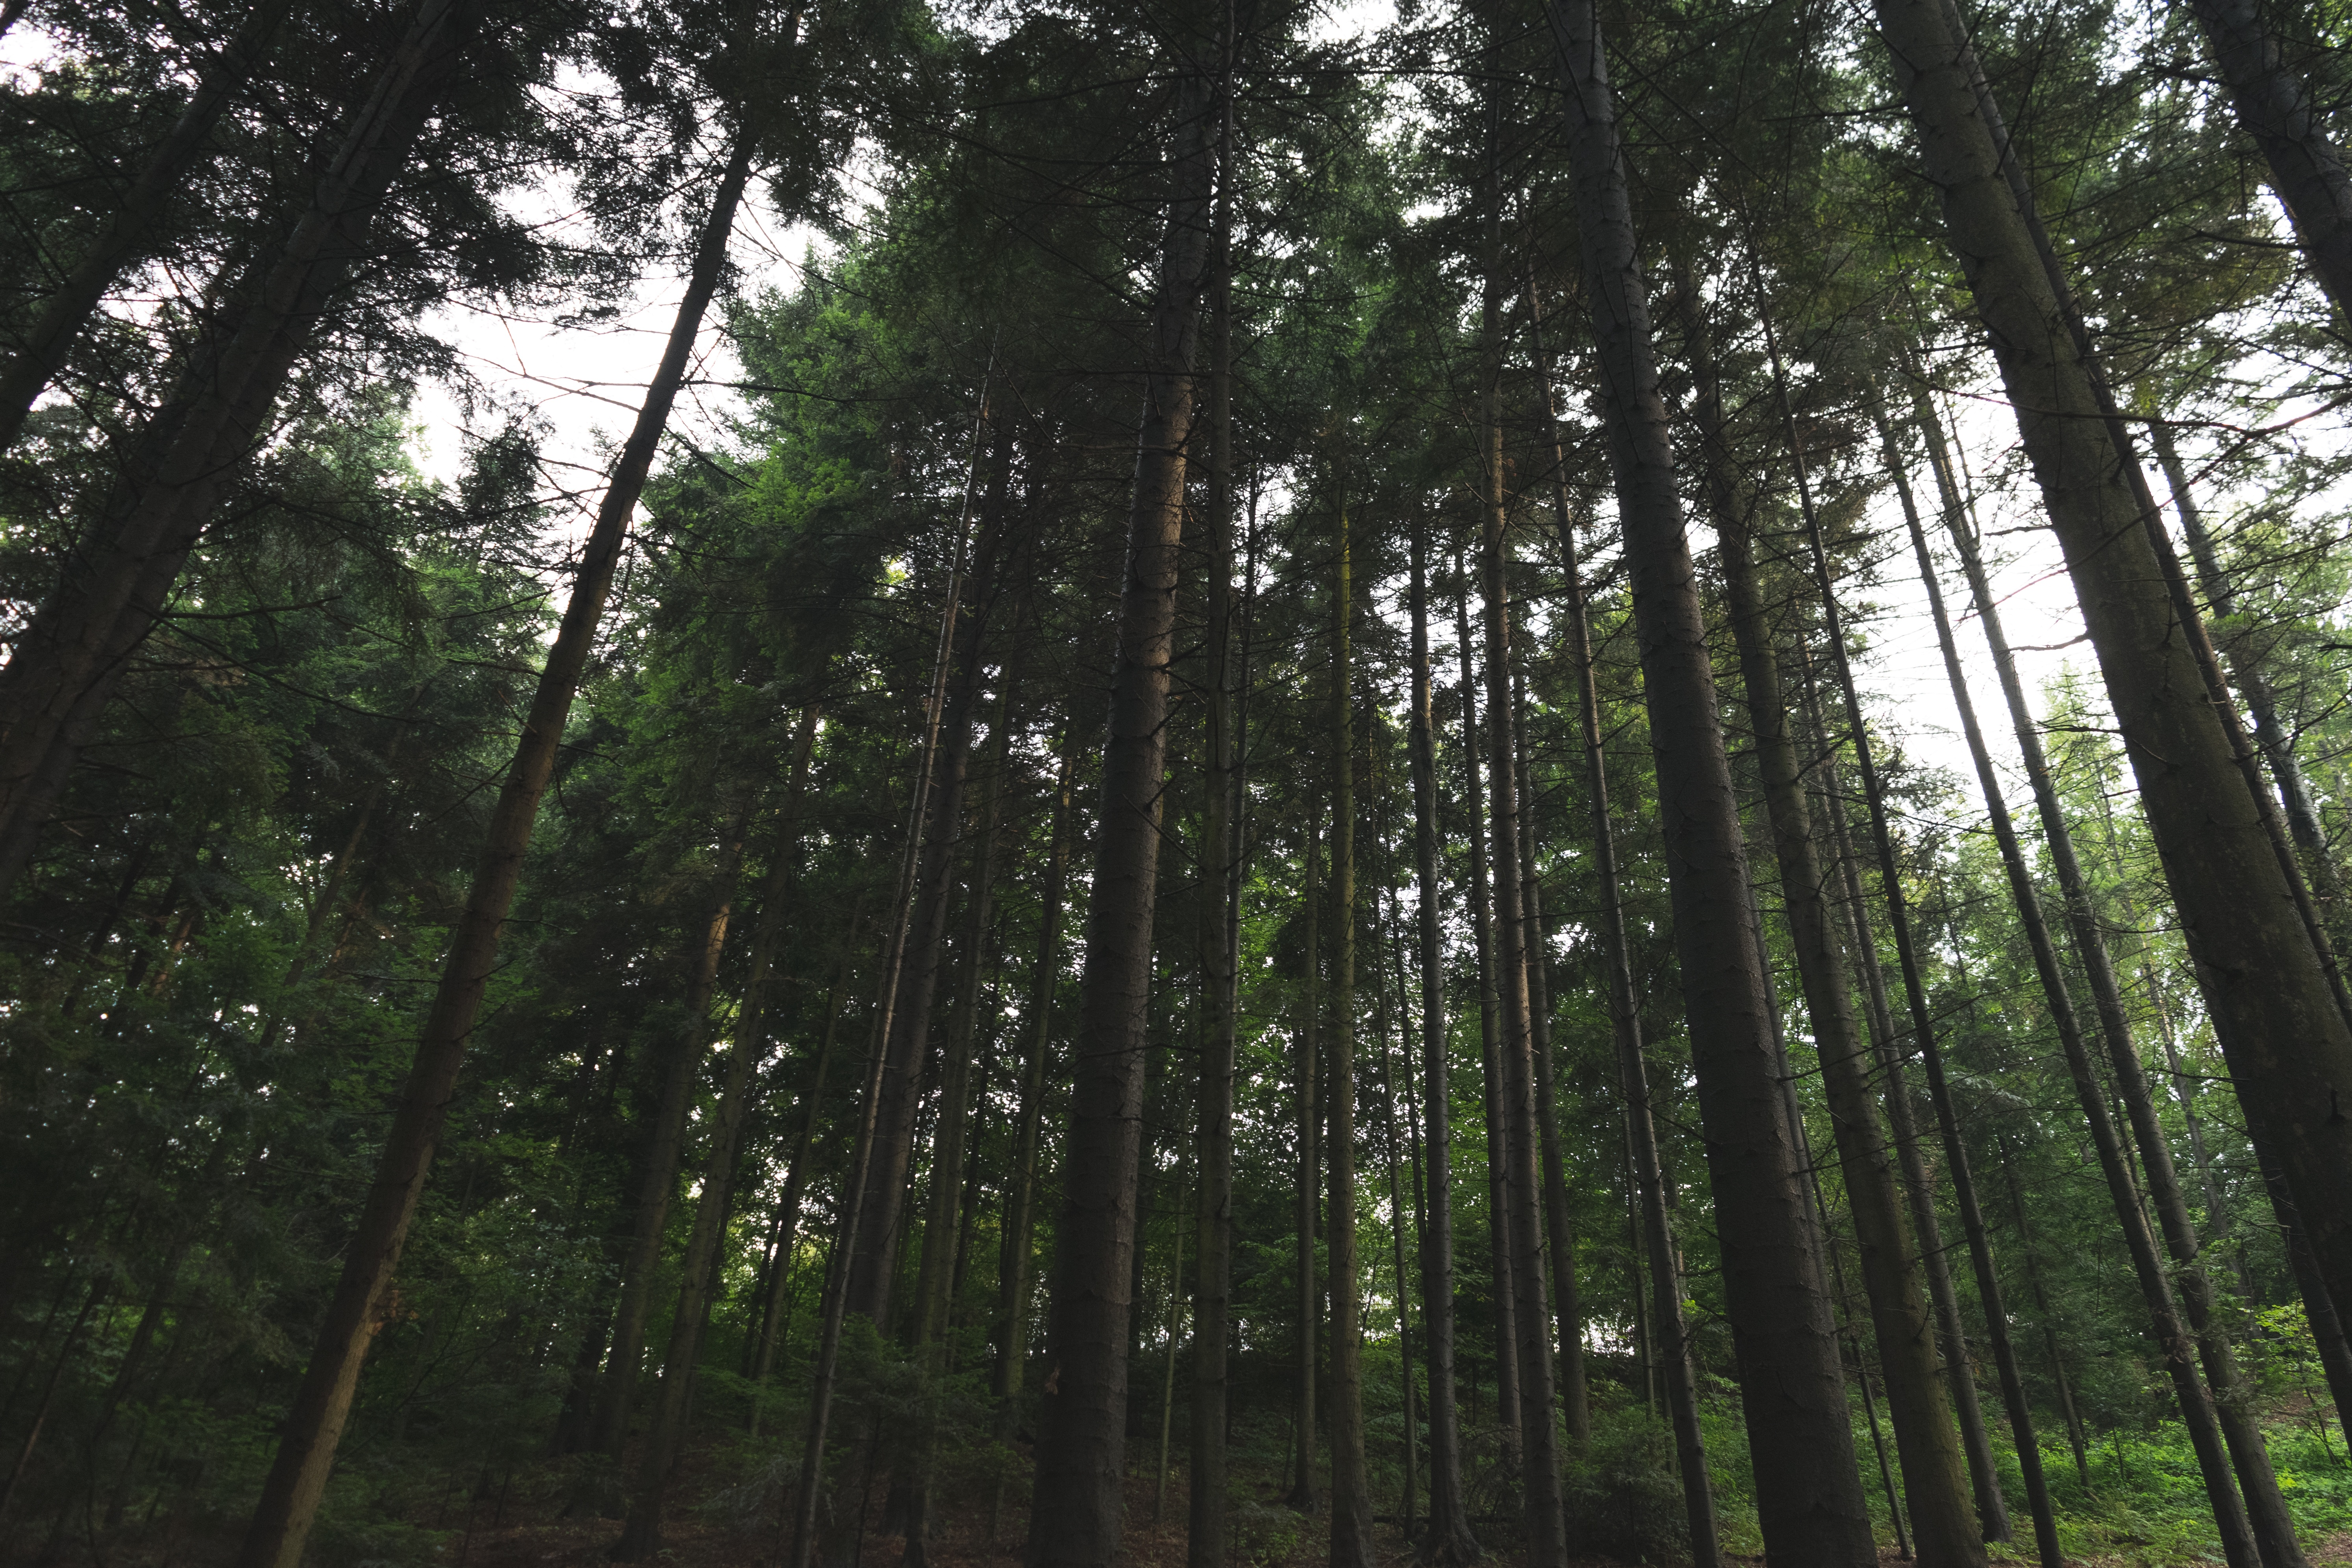 Forest, Tree, Wood, Plants, Green, HQ Photo